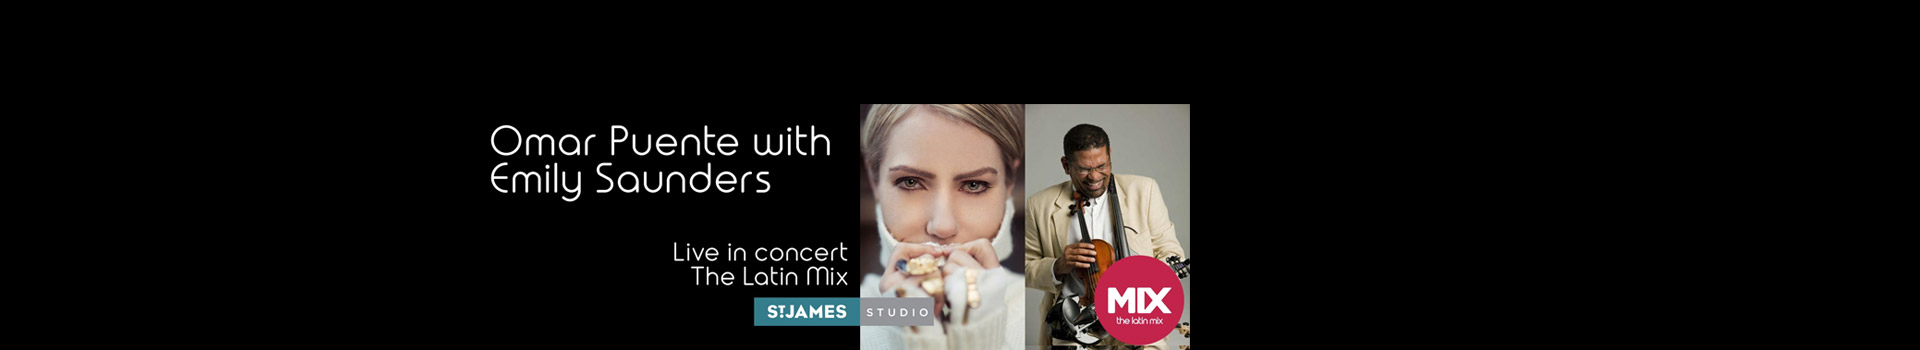 The Latin Mix: Emily Saunders ESB & Omar Puente tickets London